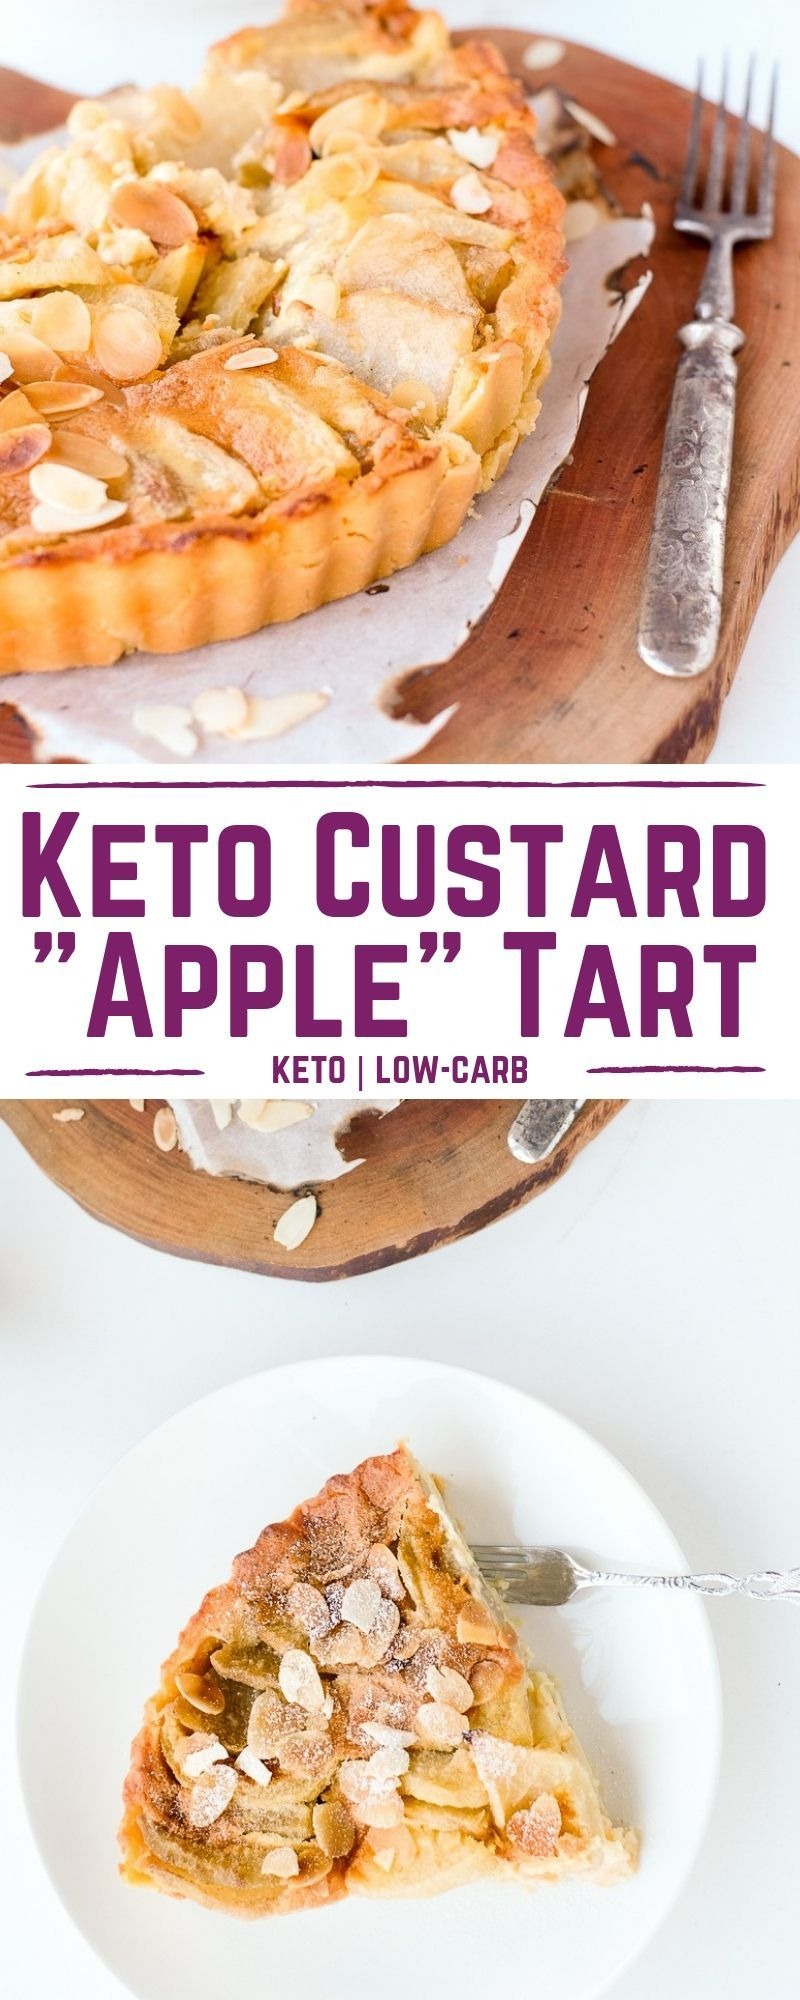 Keto Custard Apple Tart | My Sweet Keto